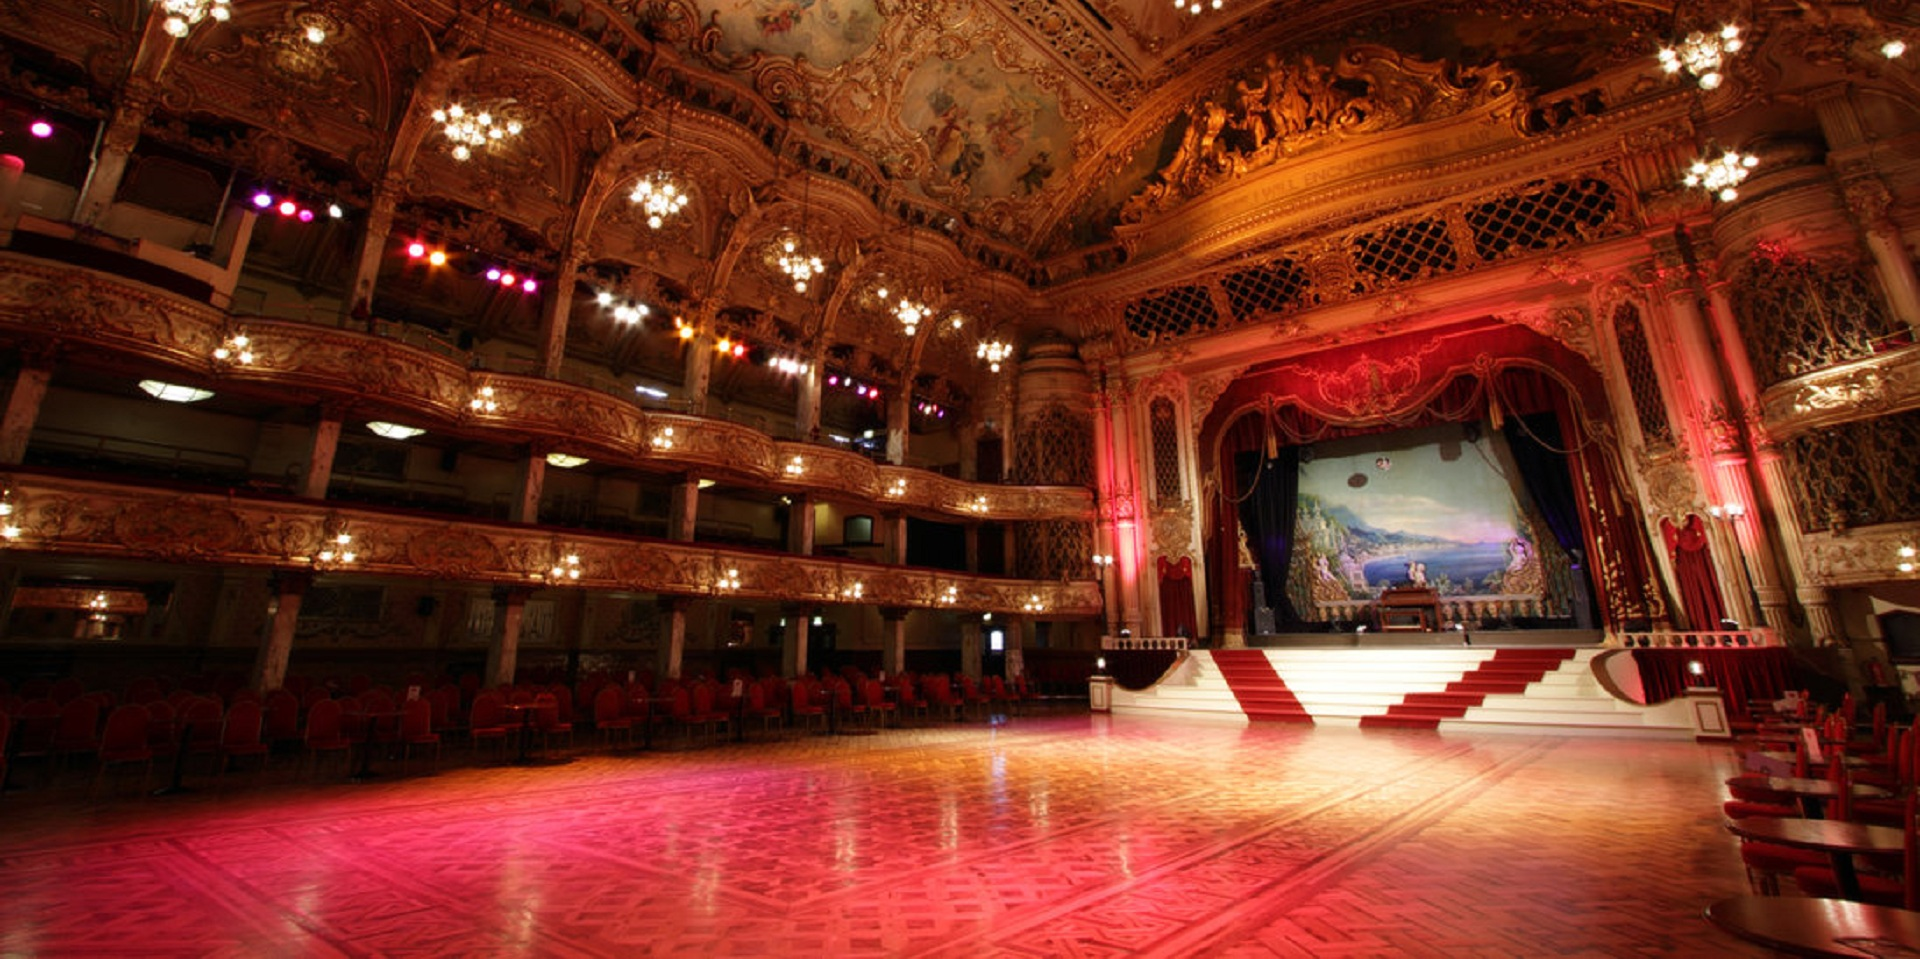 blackpool tower ballroom wallpapers - photo #7